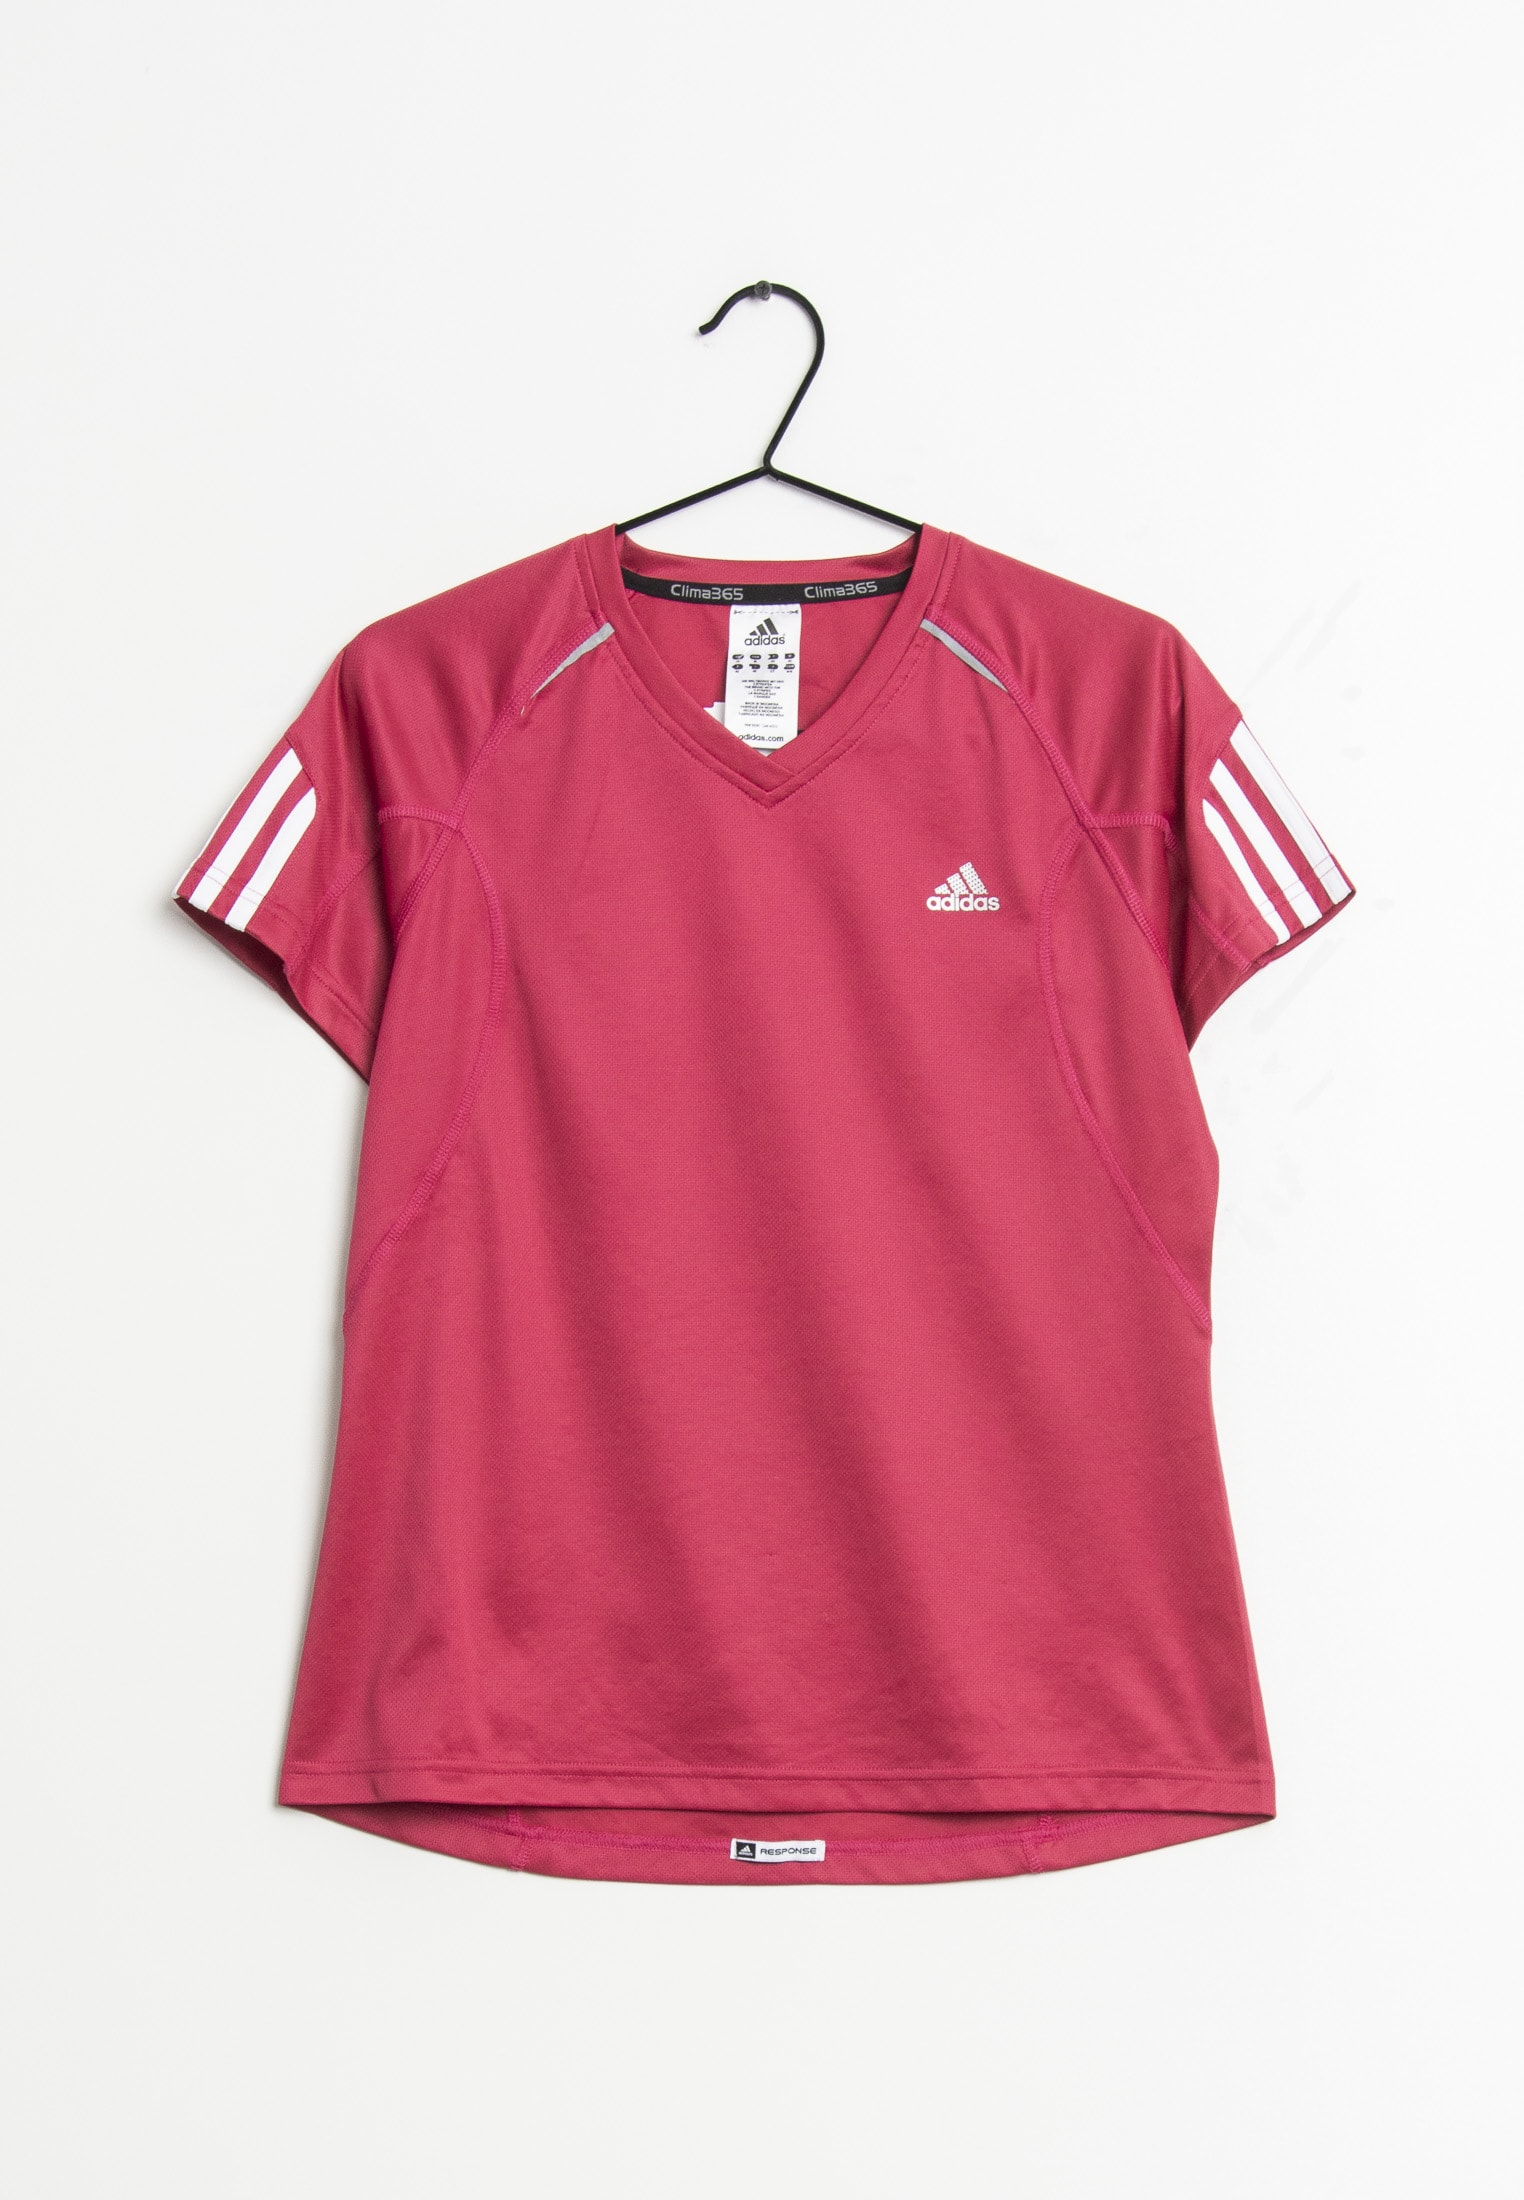 adidas Performance T-Shirt Pink Gr.42